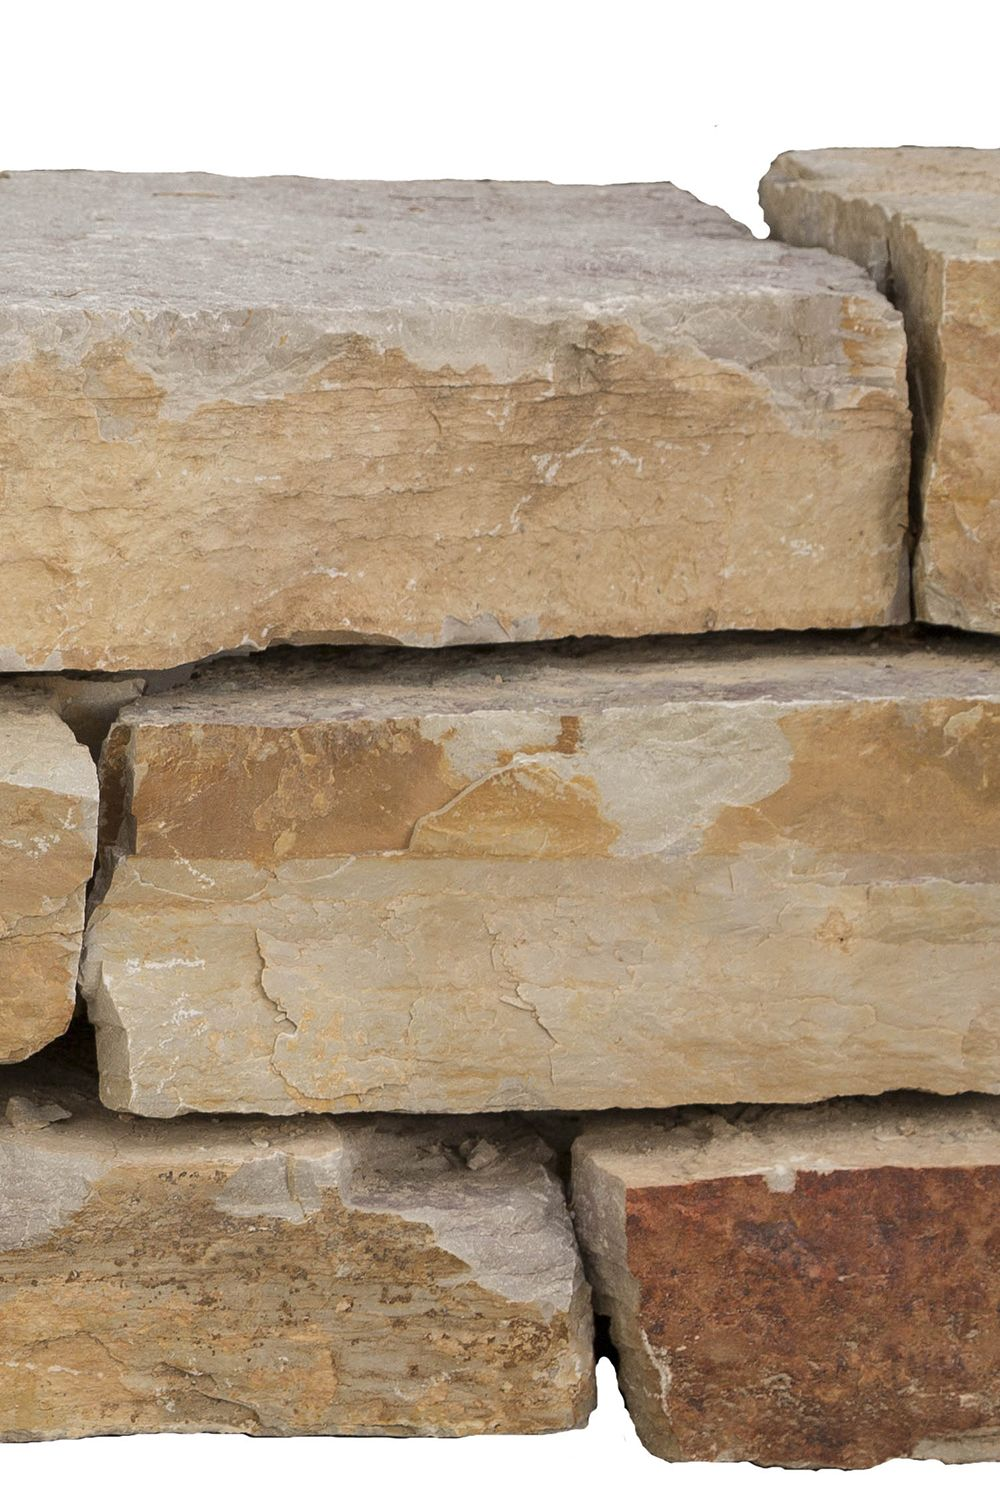 Chilton Weatheredge Outcroppings Natural Landscape Stone Design Stone Retaining Wall Landscape Stone Stone Landscaping